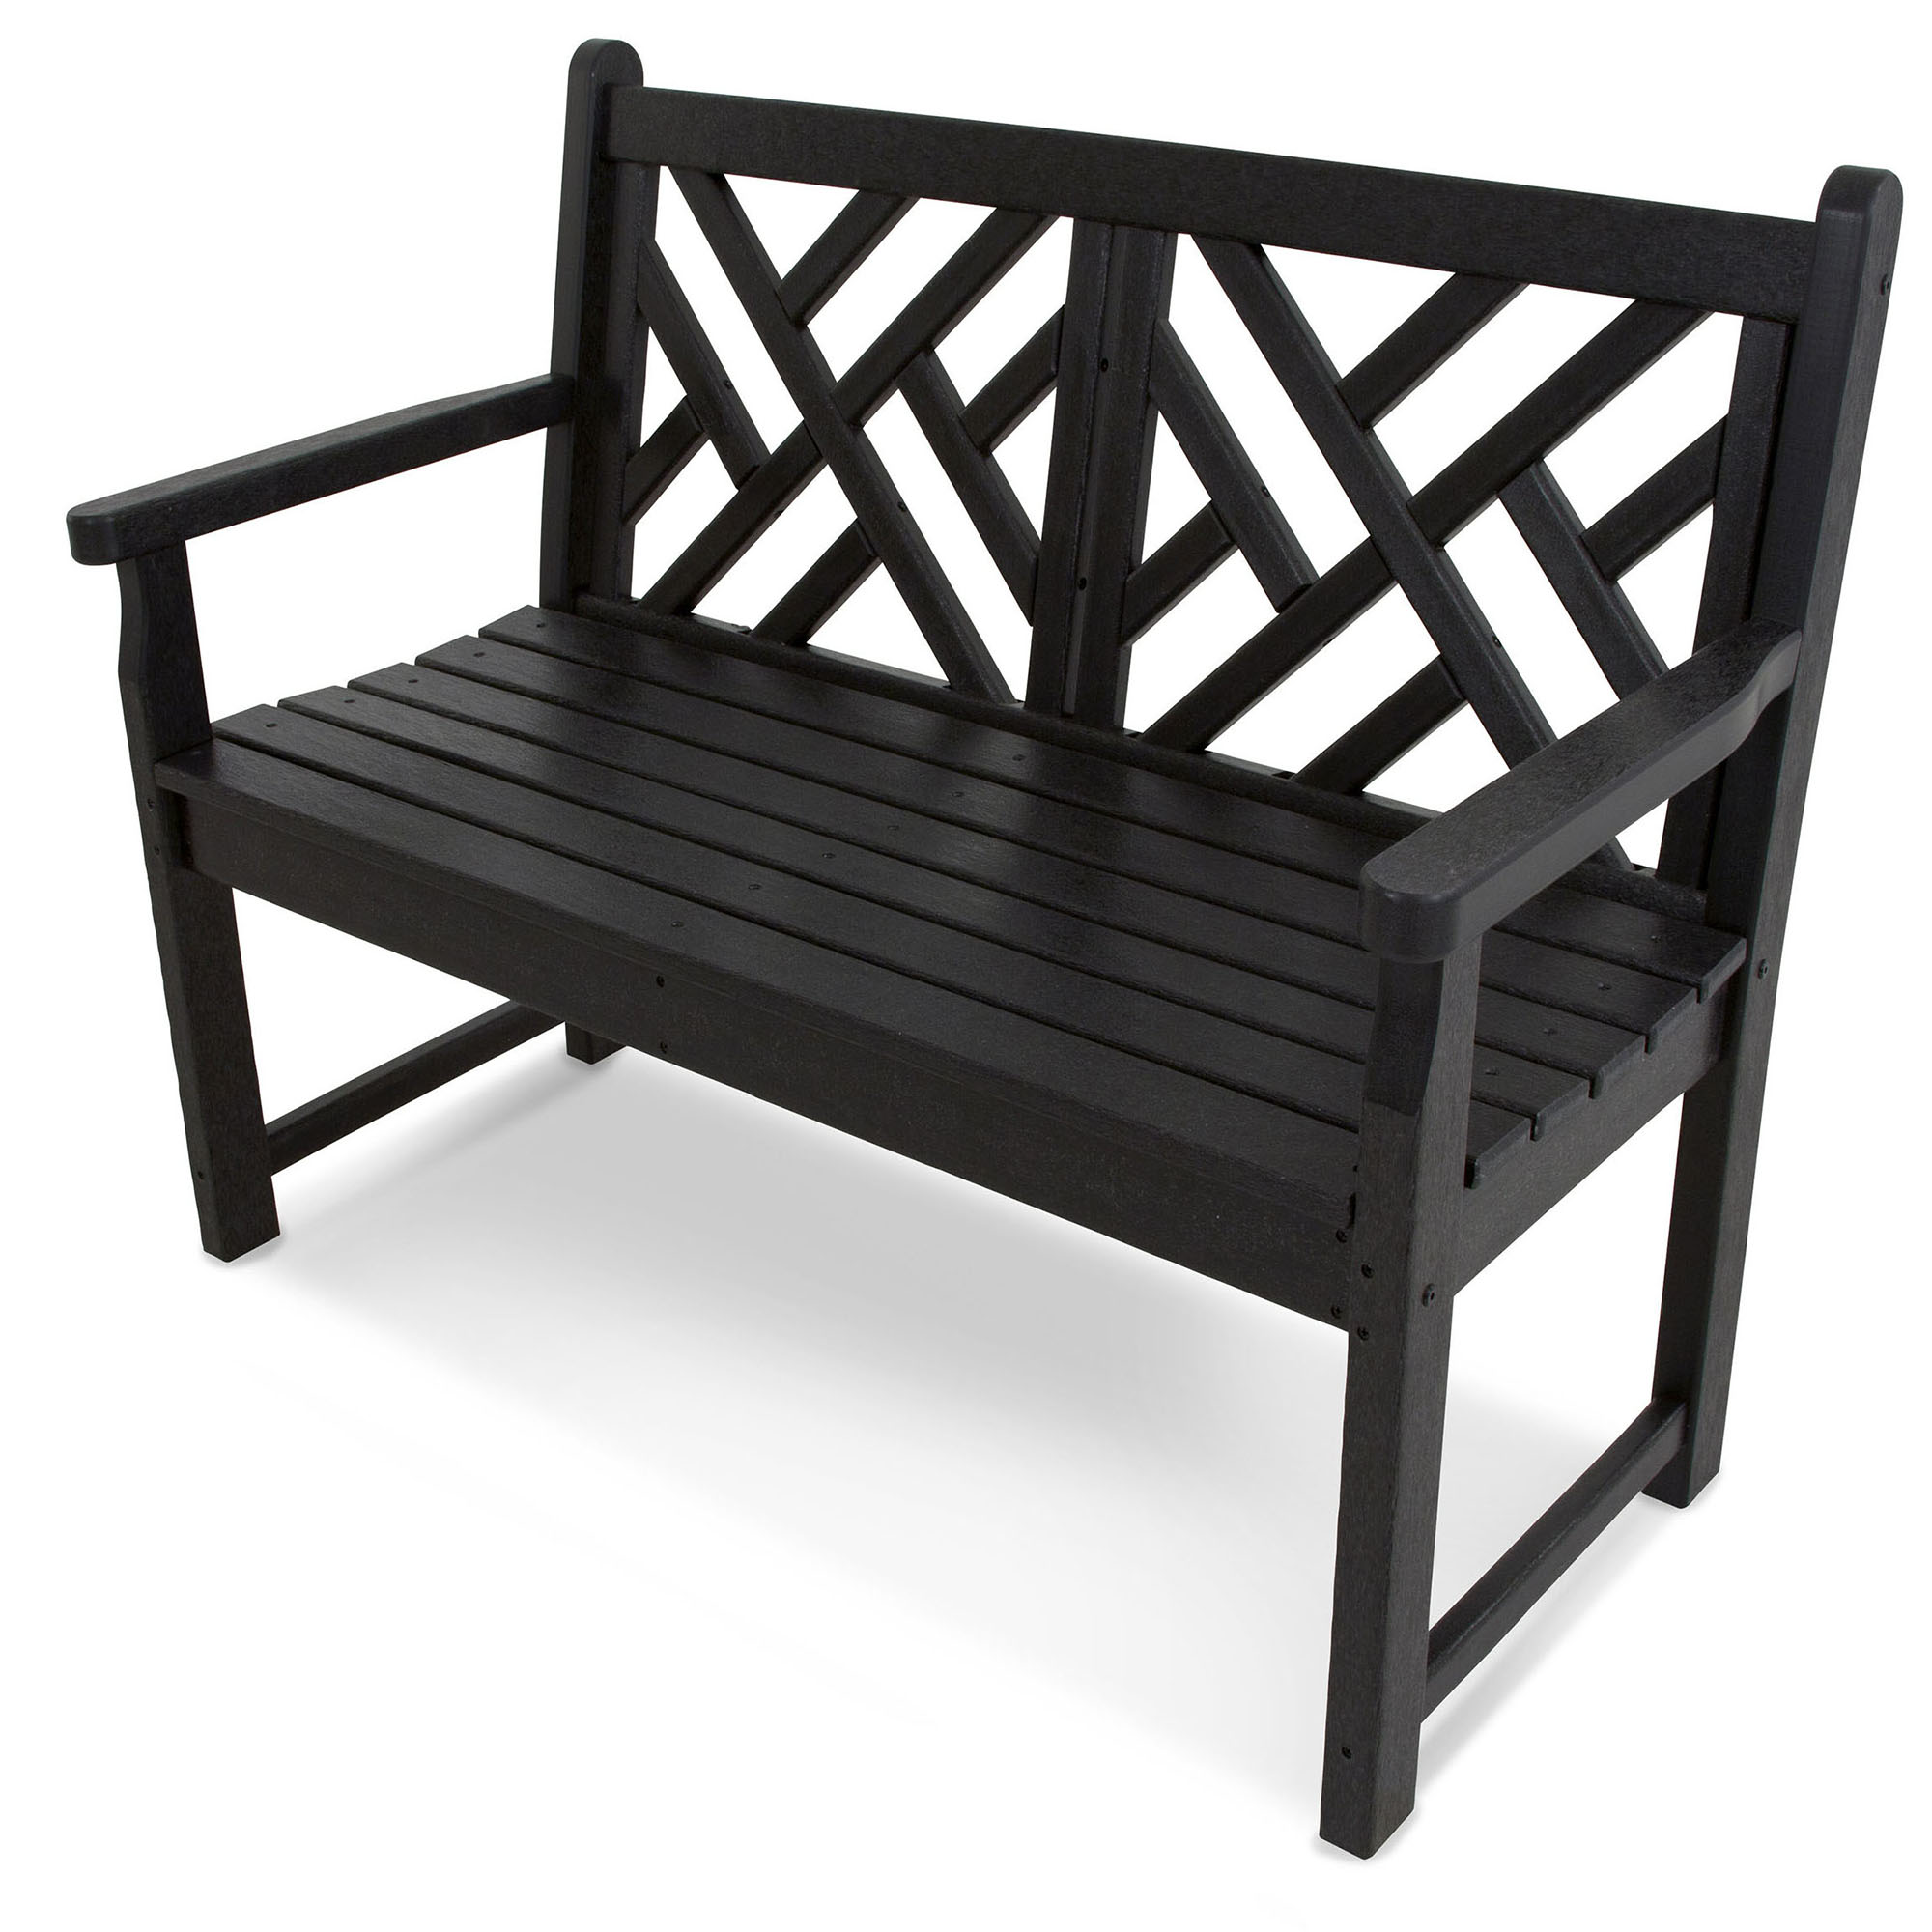 Check out the Chippendale Bench Product Photo